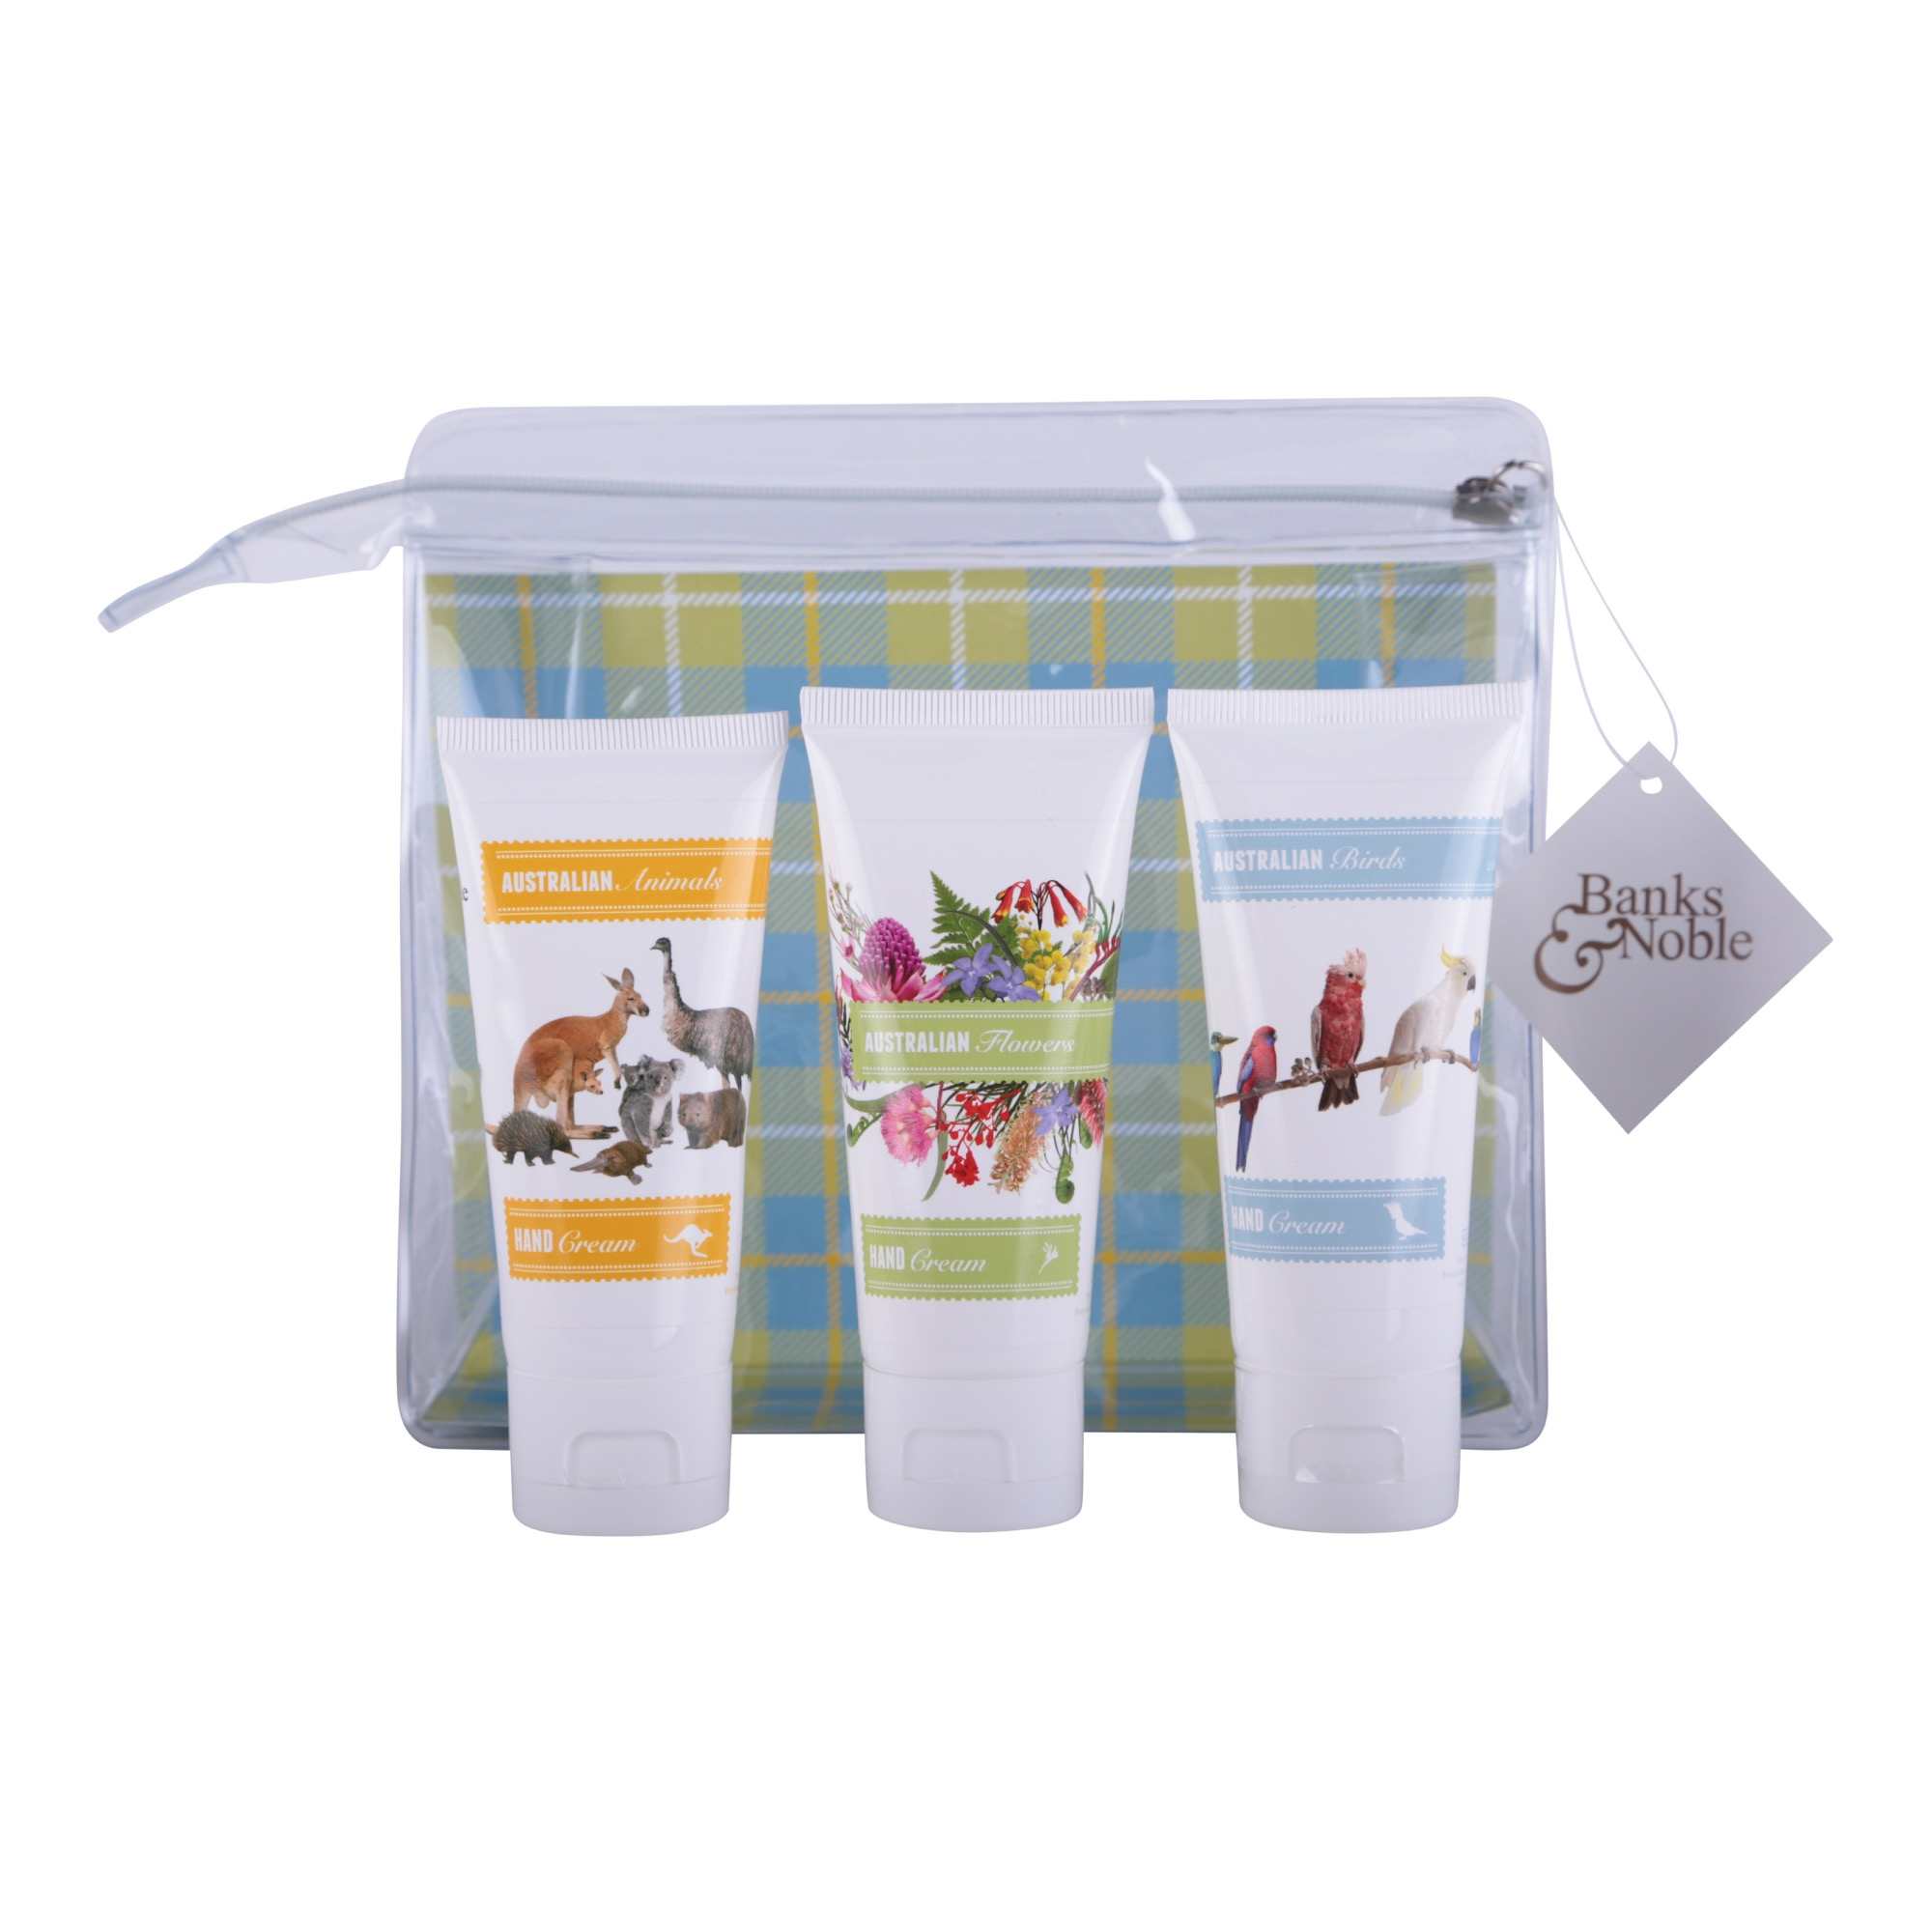 Australian Trio Animal, Flower & Bird Gift Pack - 3 Hand Creams